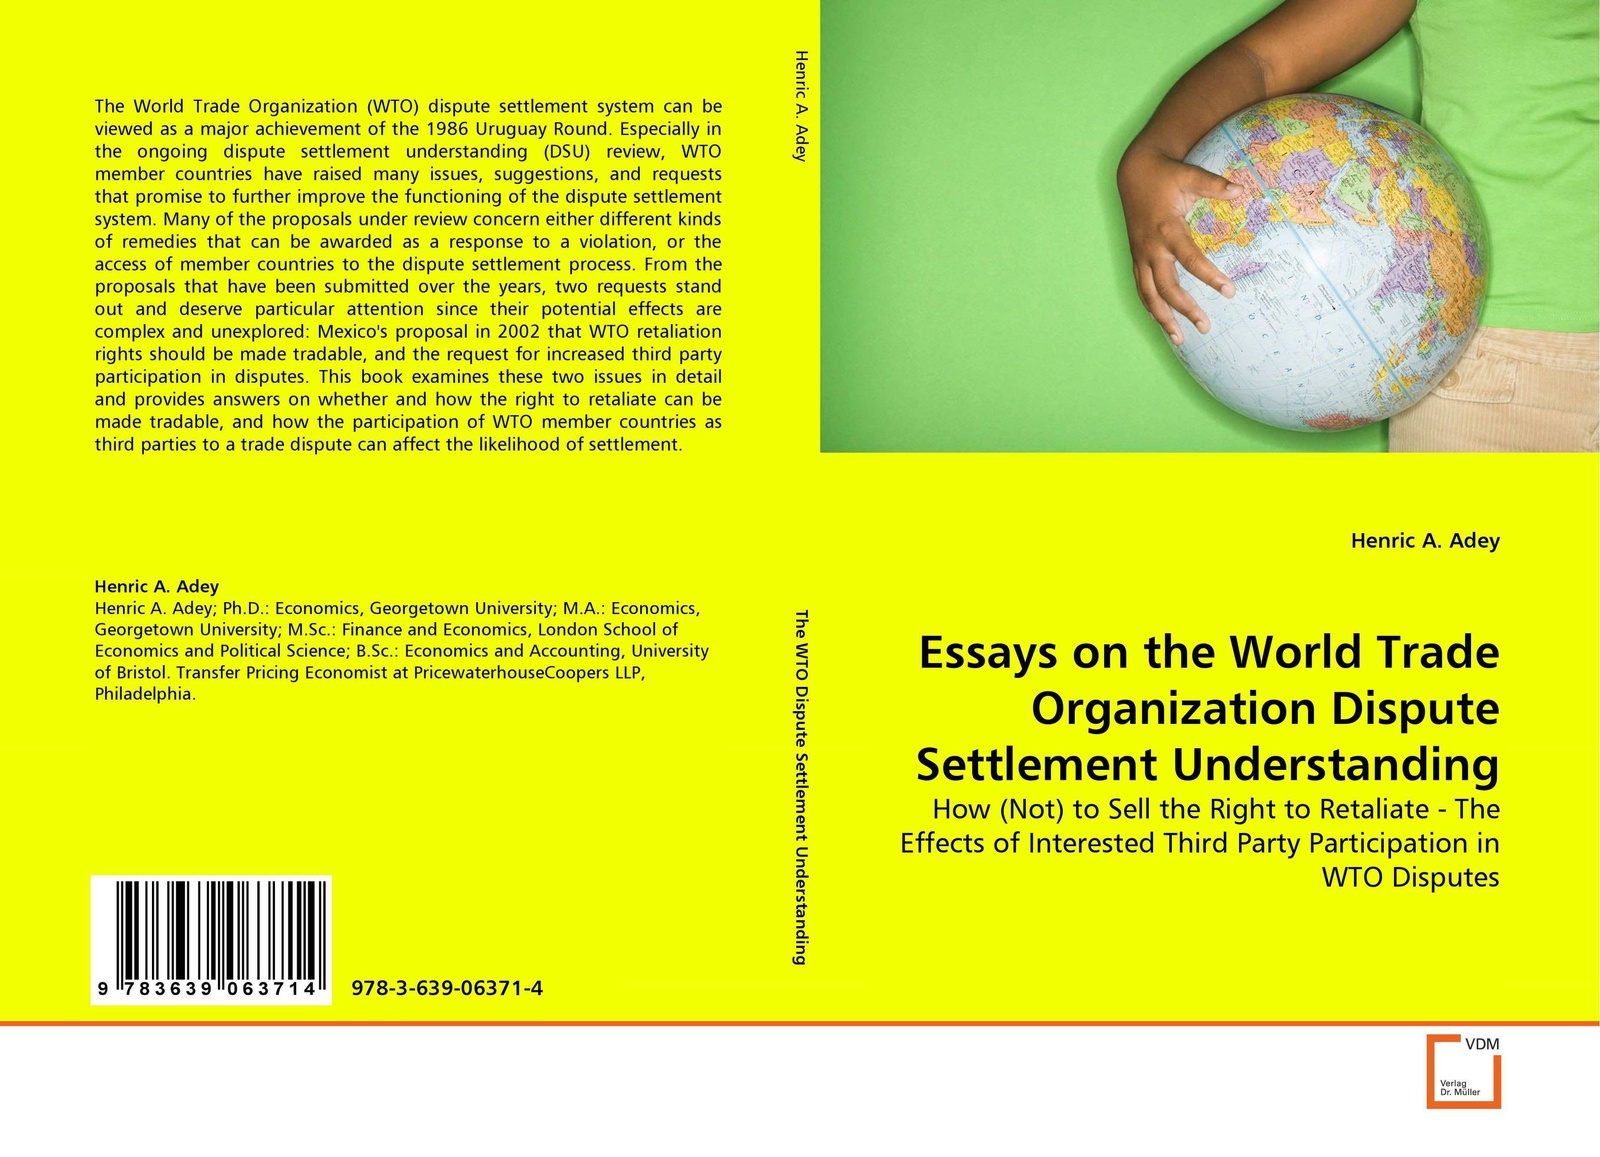 Henric A. Adey Essays on the World Trade Organization Dispute Settlement Understanding vivienne katjiuongua towards stakeholder participation in the initiation of wto disputes